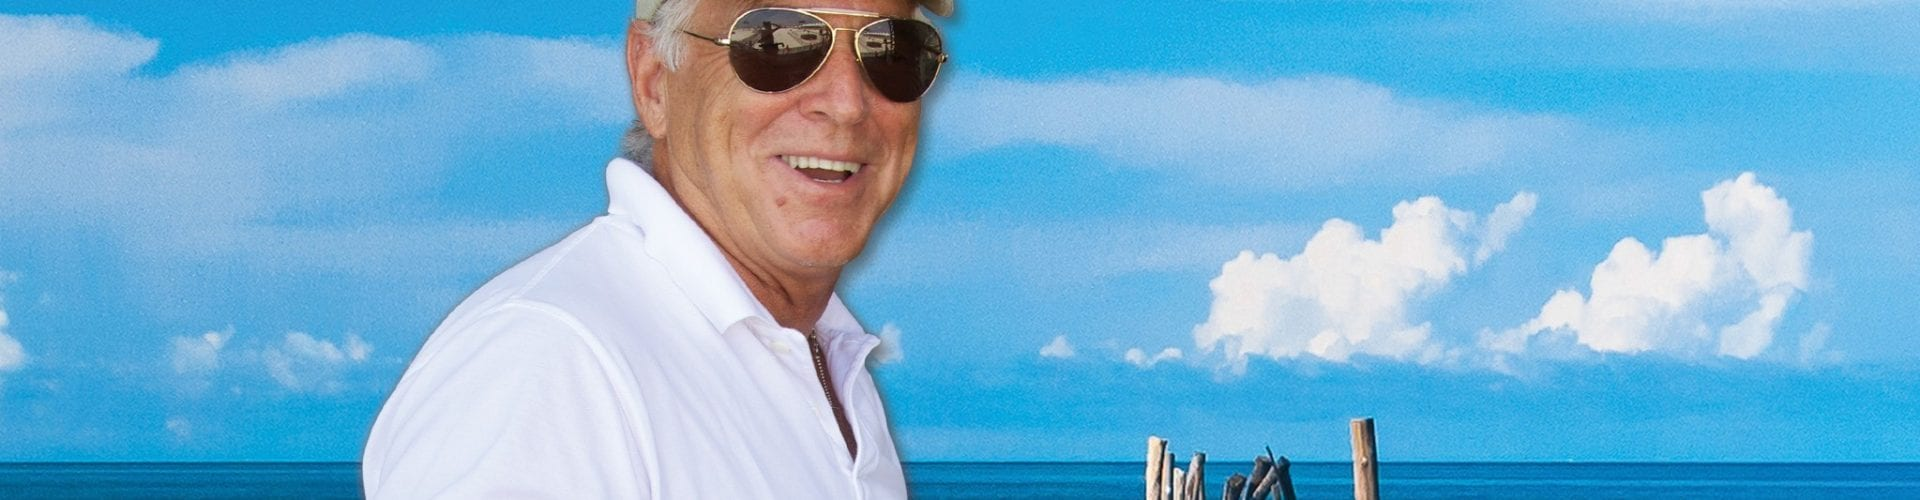 Stranded Jimmy Buffett Concertgoers To Receive 'Concert Cash,' No Refunds